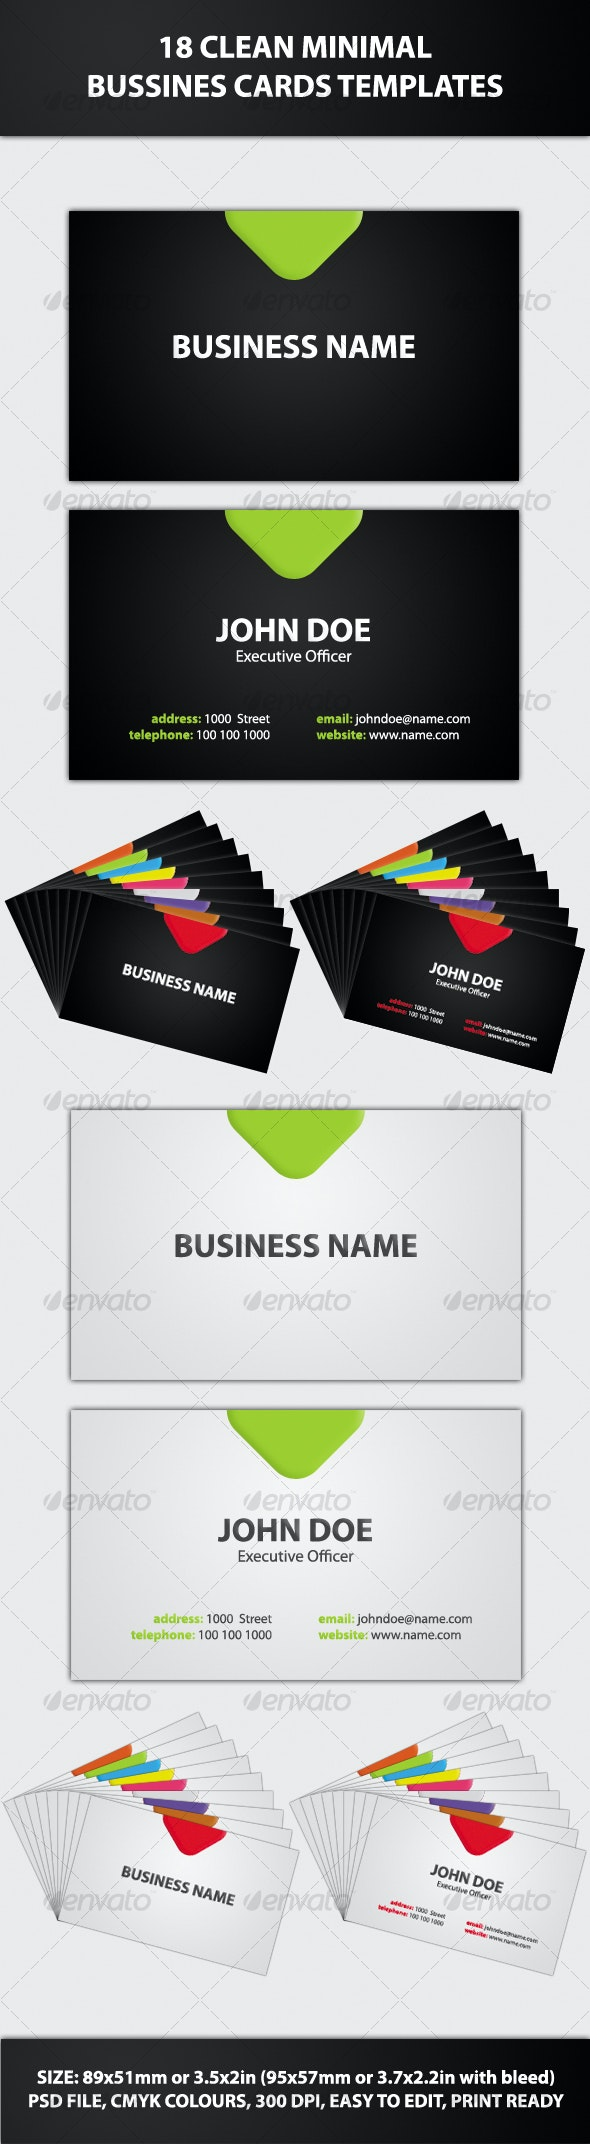 18 Clean Minimal Bussines Cards Templates - Creative Business Cards